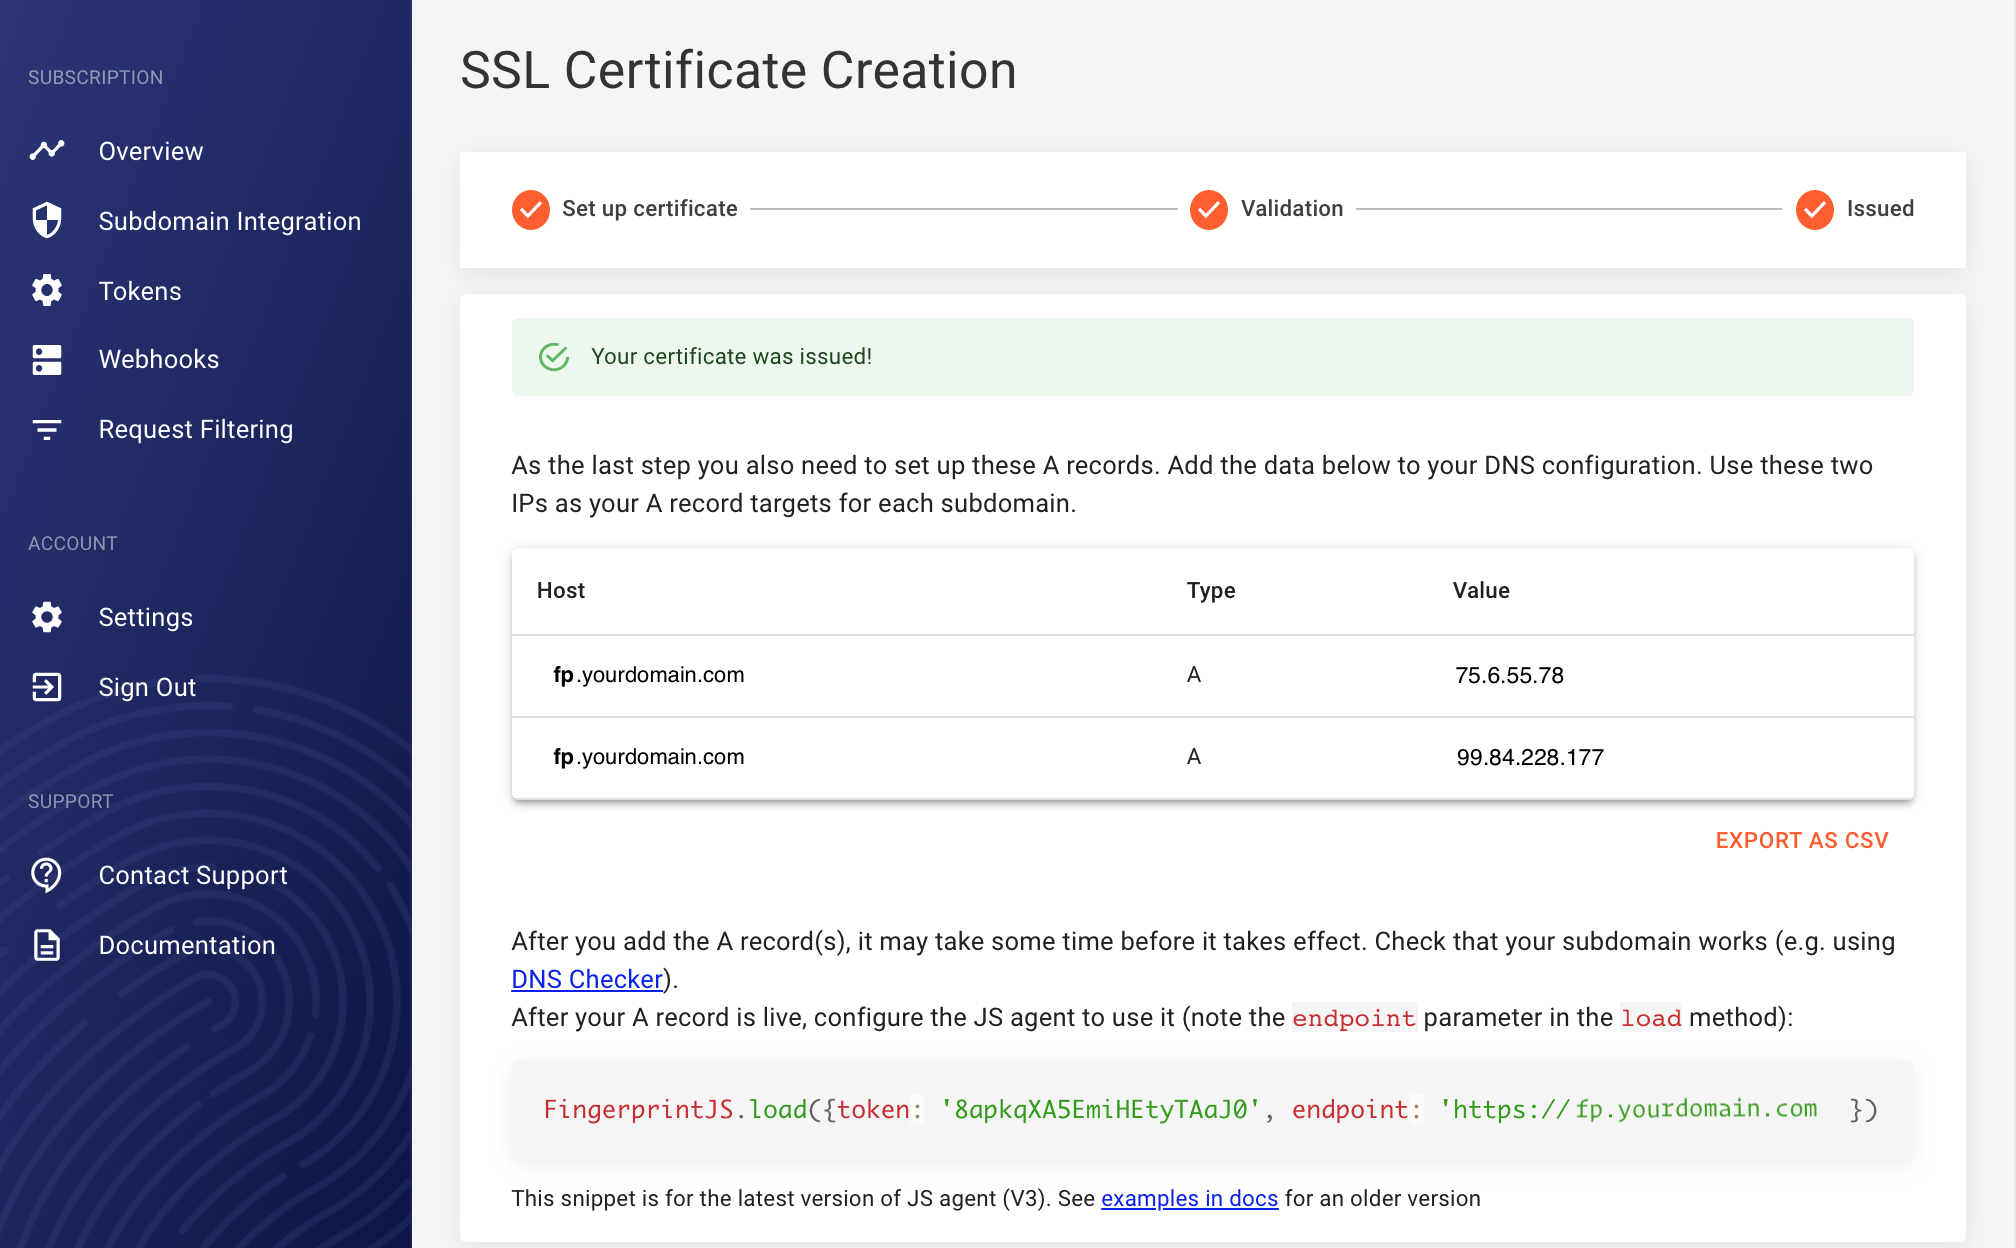 Screenshot of a completed SSL certificate process in the dashboard